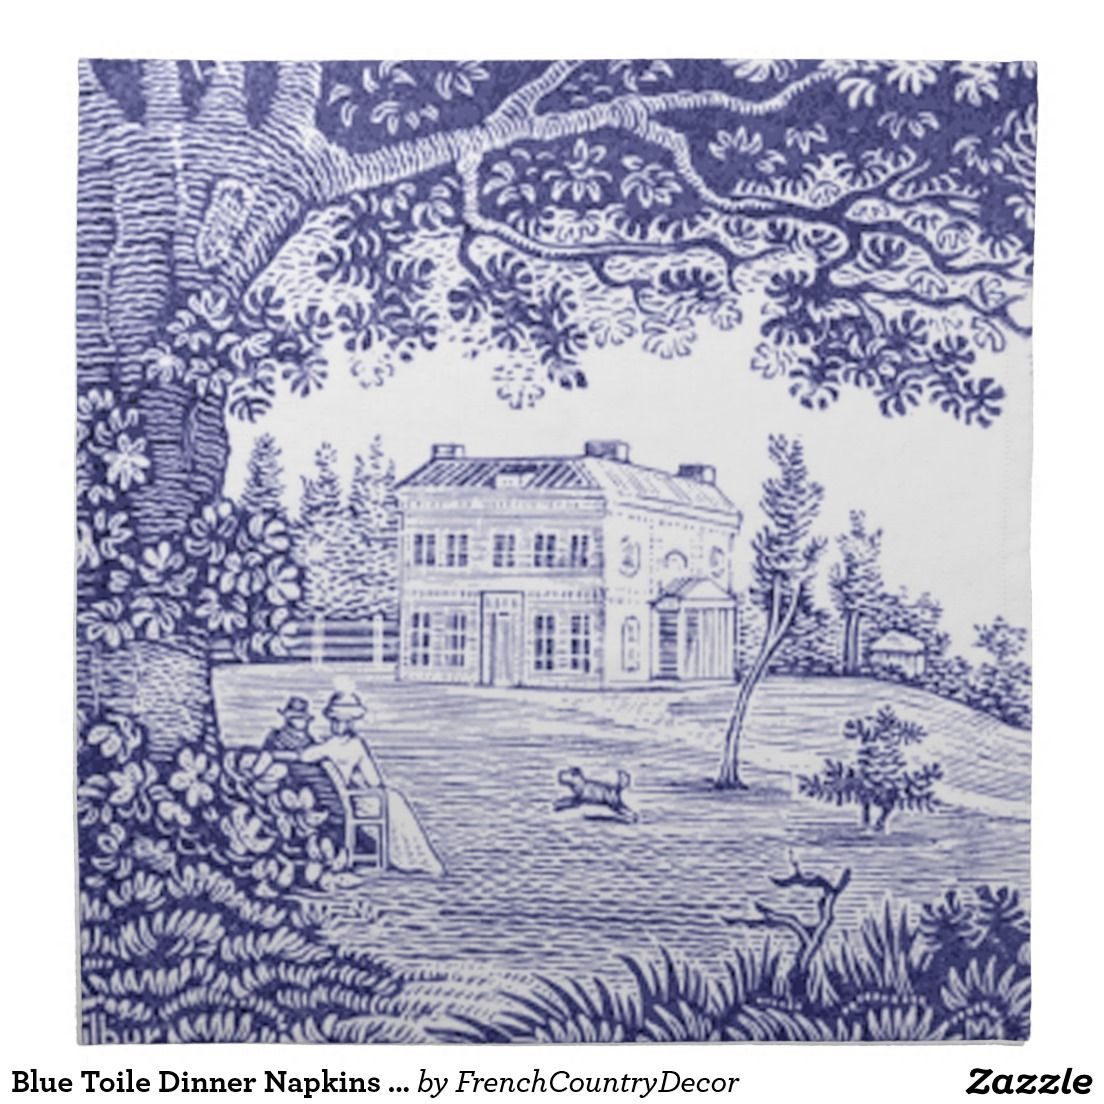 Blue Toile Dinner Napkins - French Country Decor | Zazzle.com